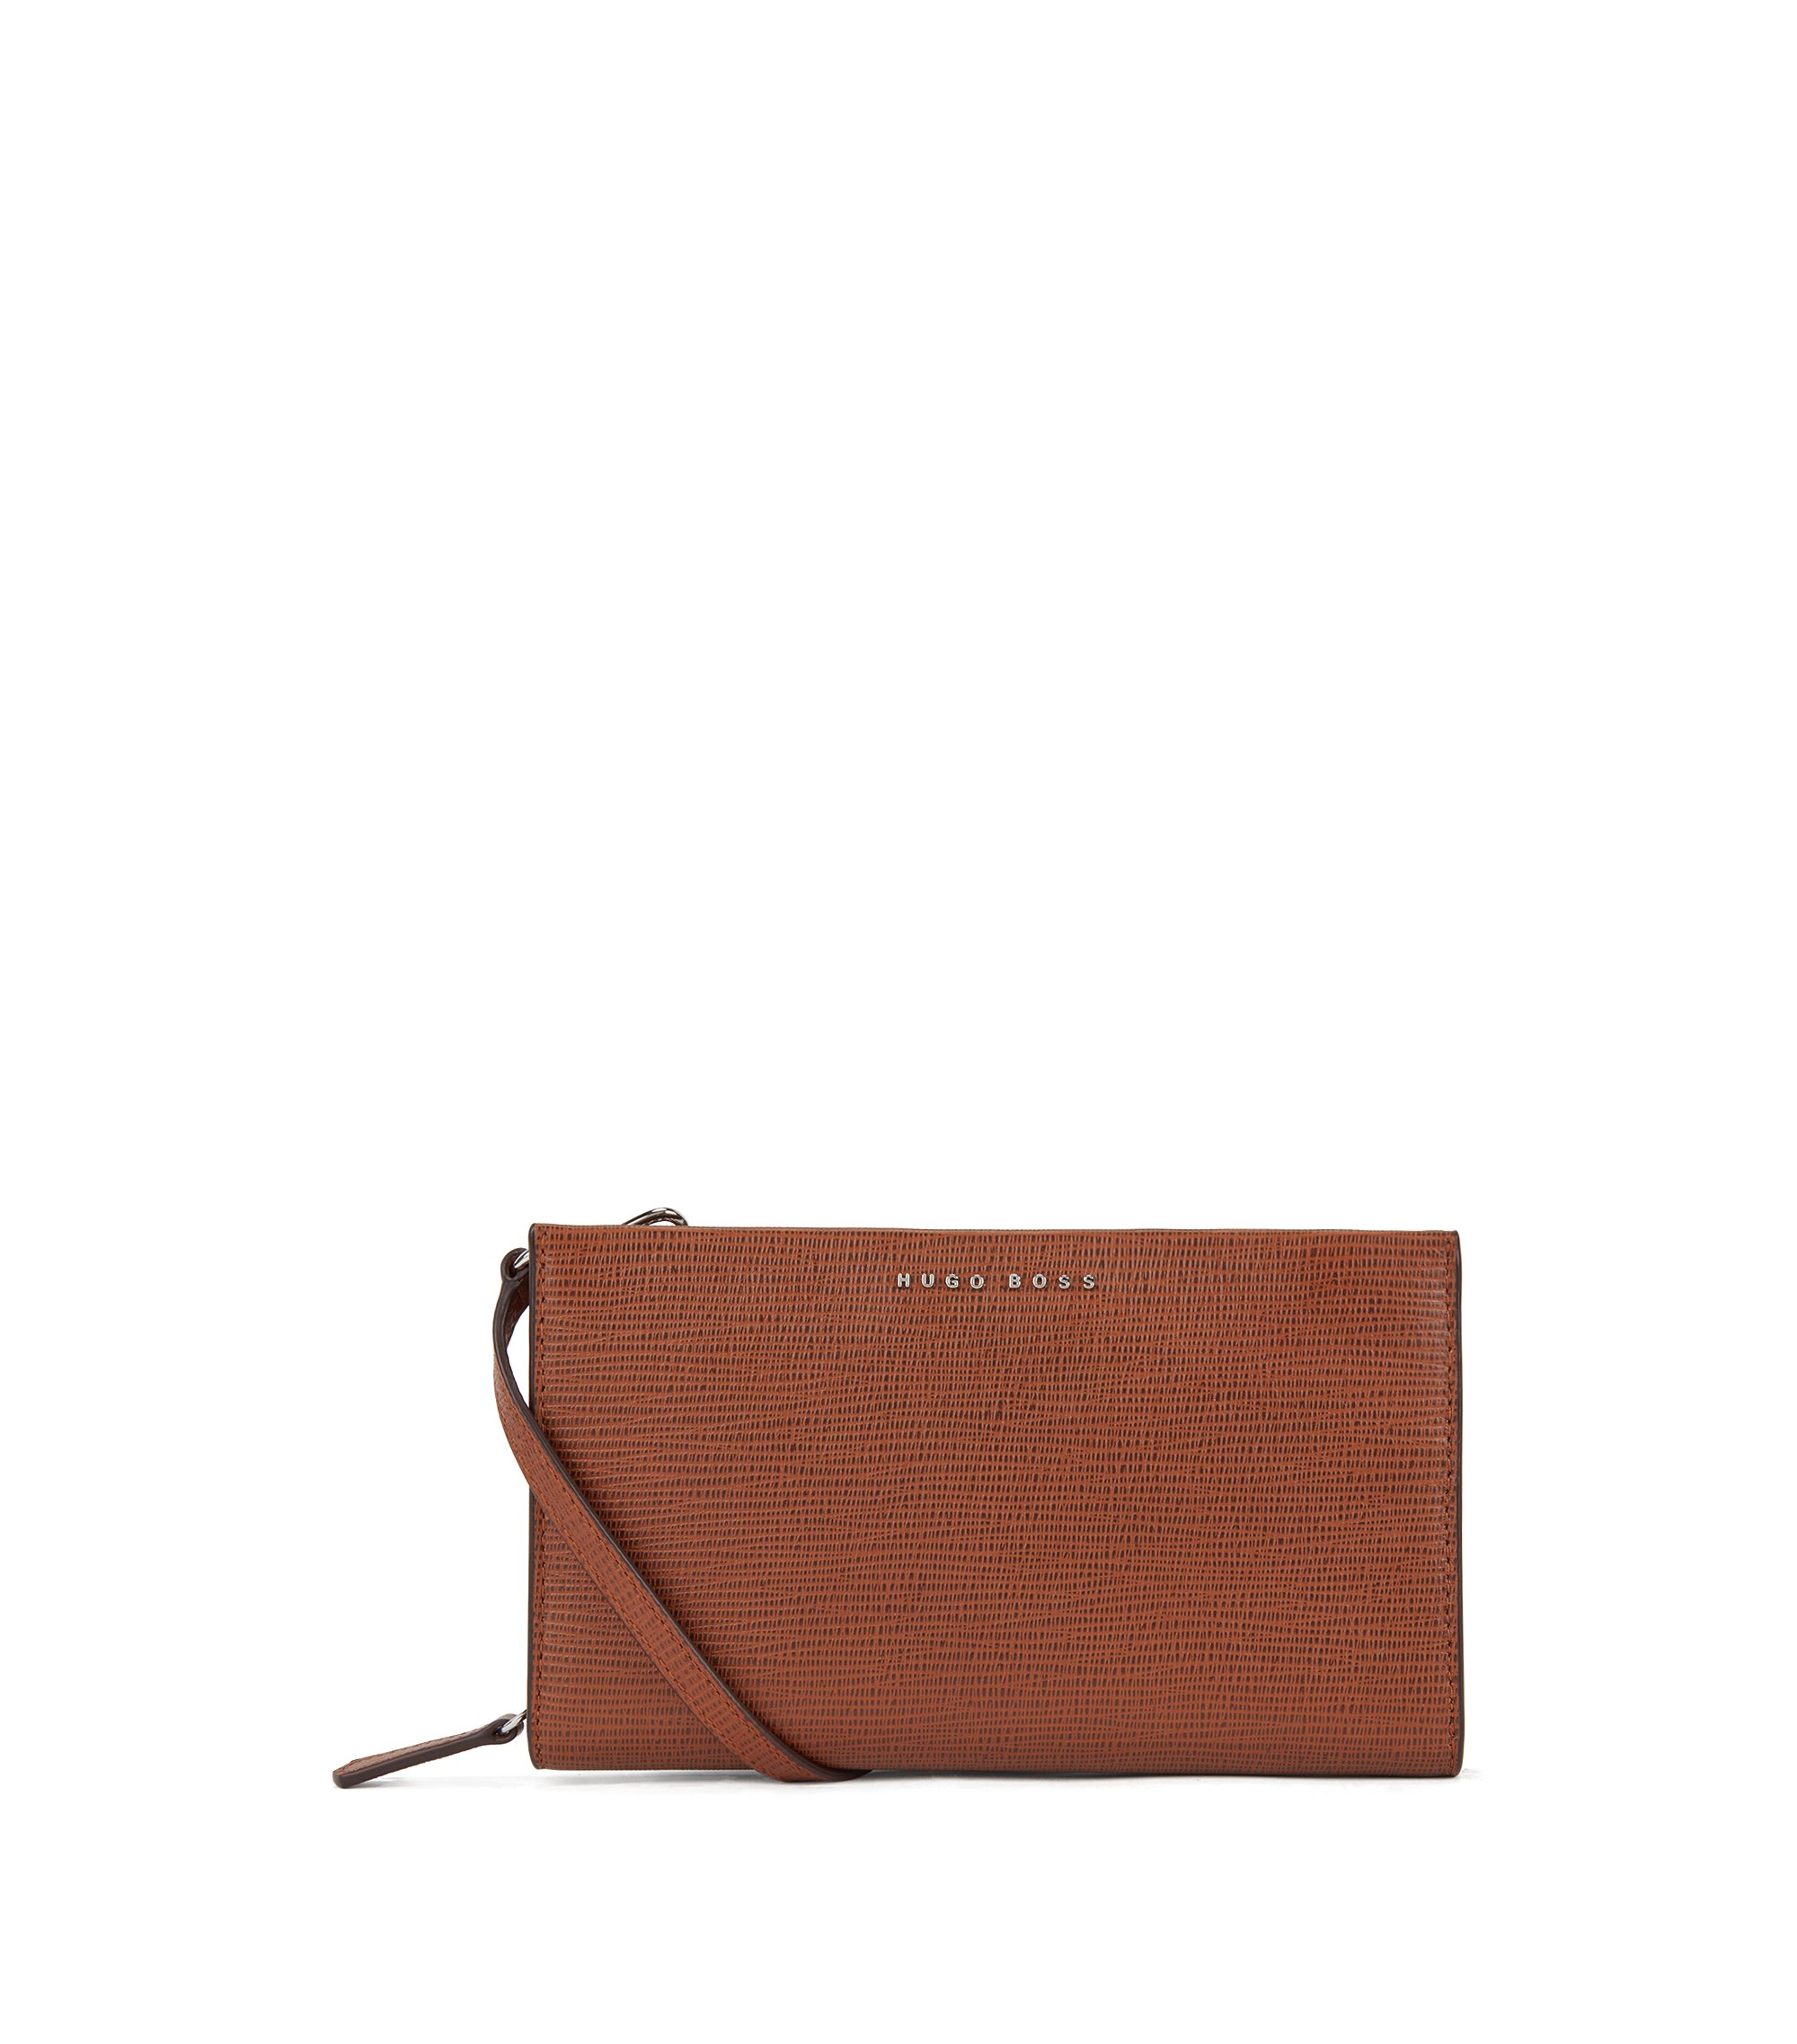 Wallet-style handbag in embossed Italian calf leather, Brown